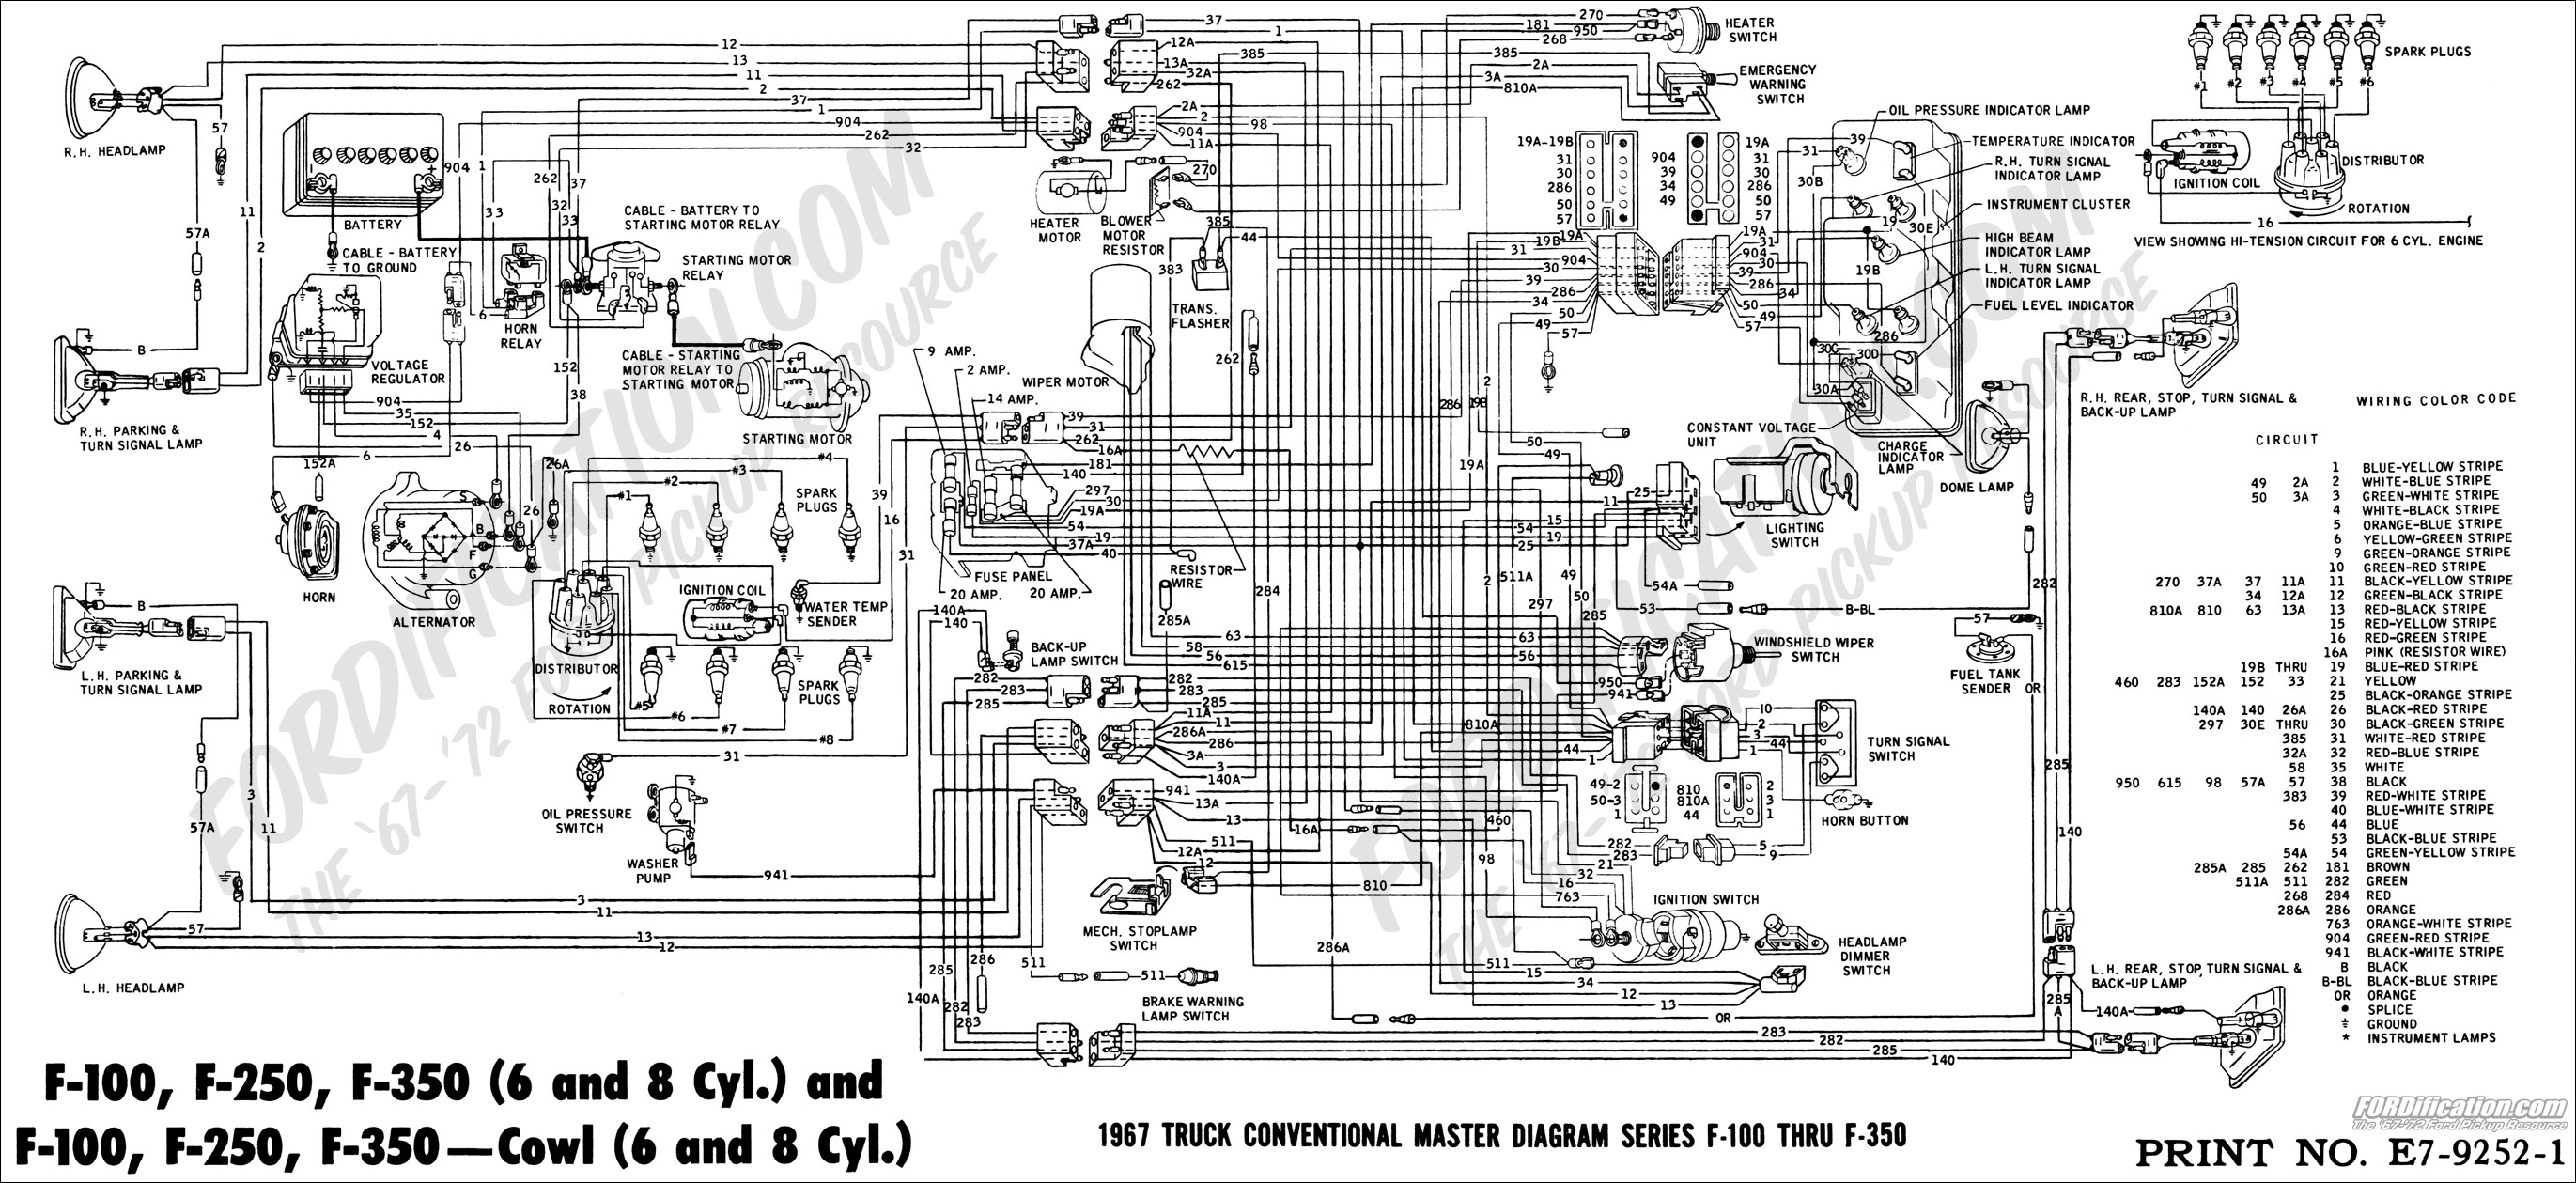 67masterdiagram 1999 ford radio wiring diagram turcolea com 1999 ford f350 radio wiring diagram at highcare.asia